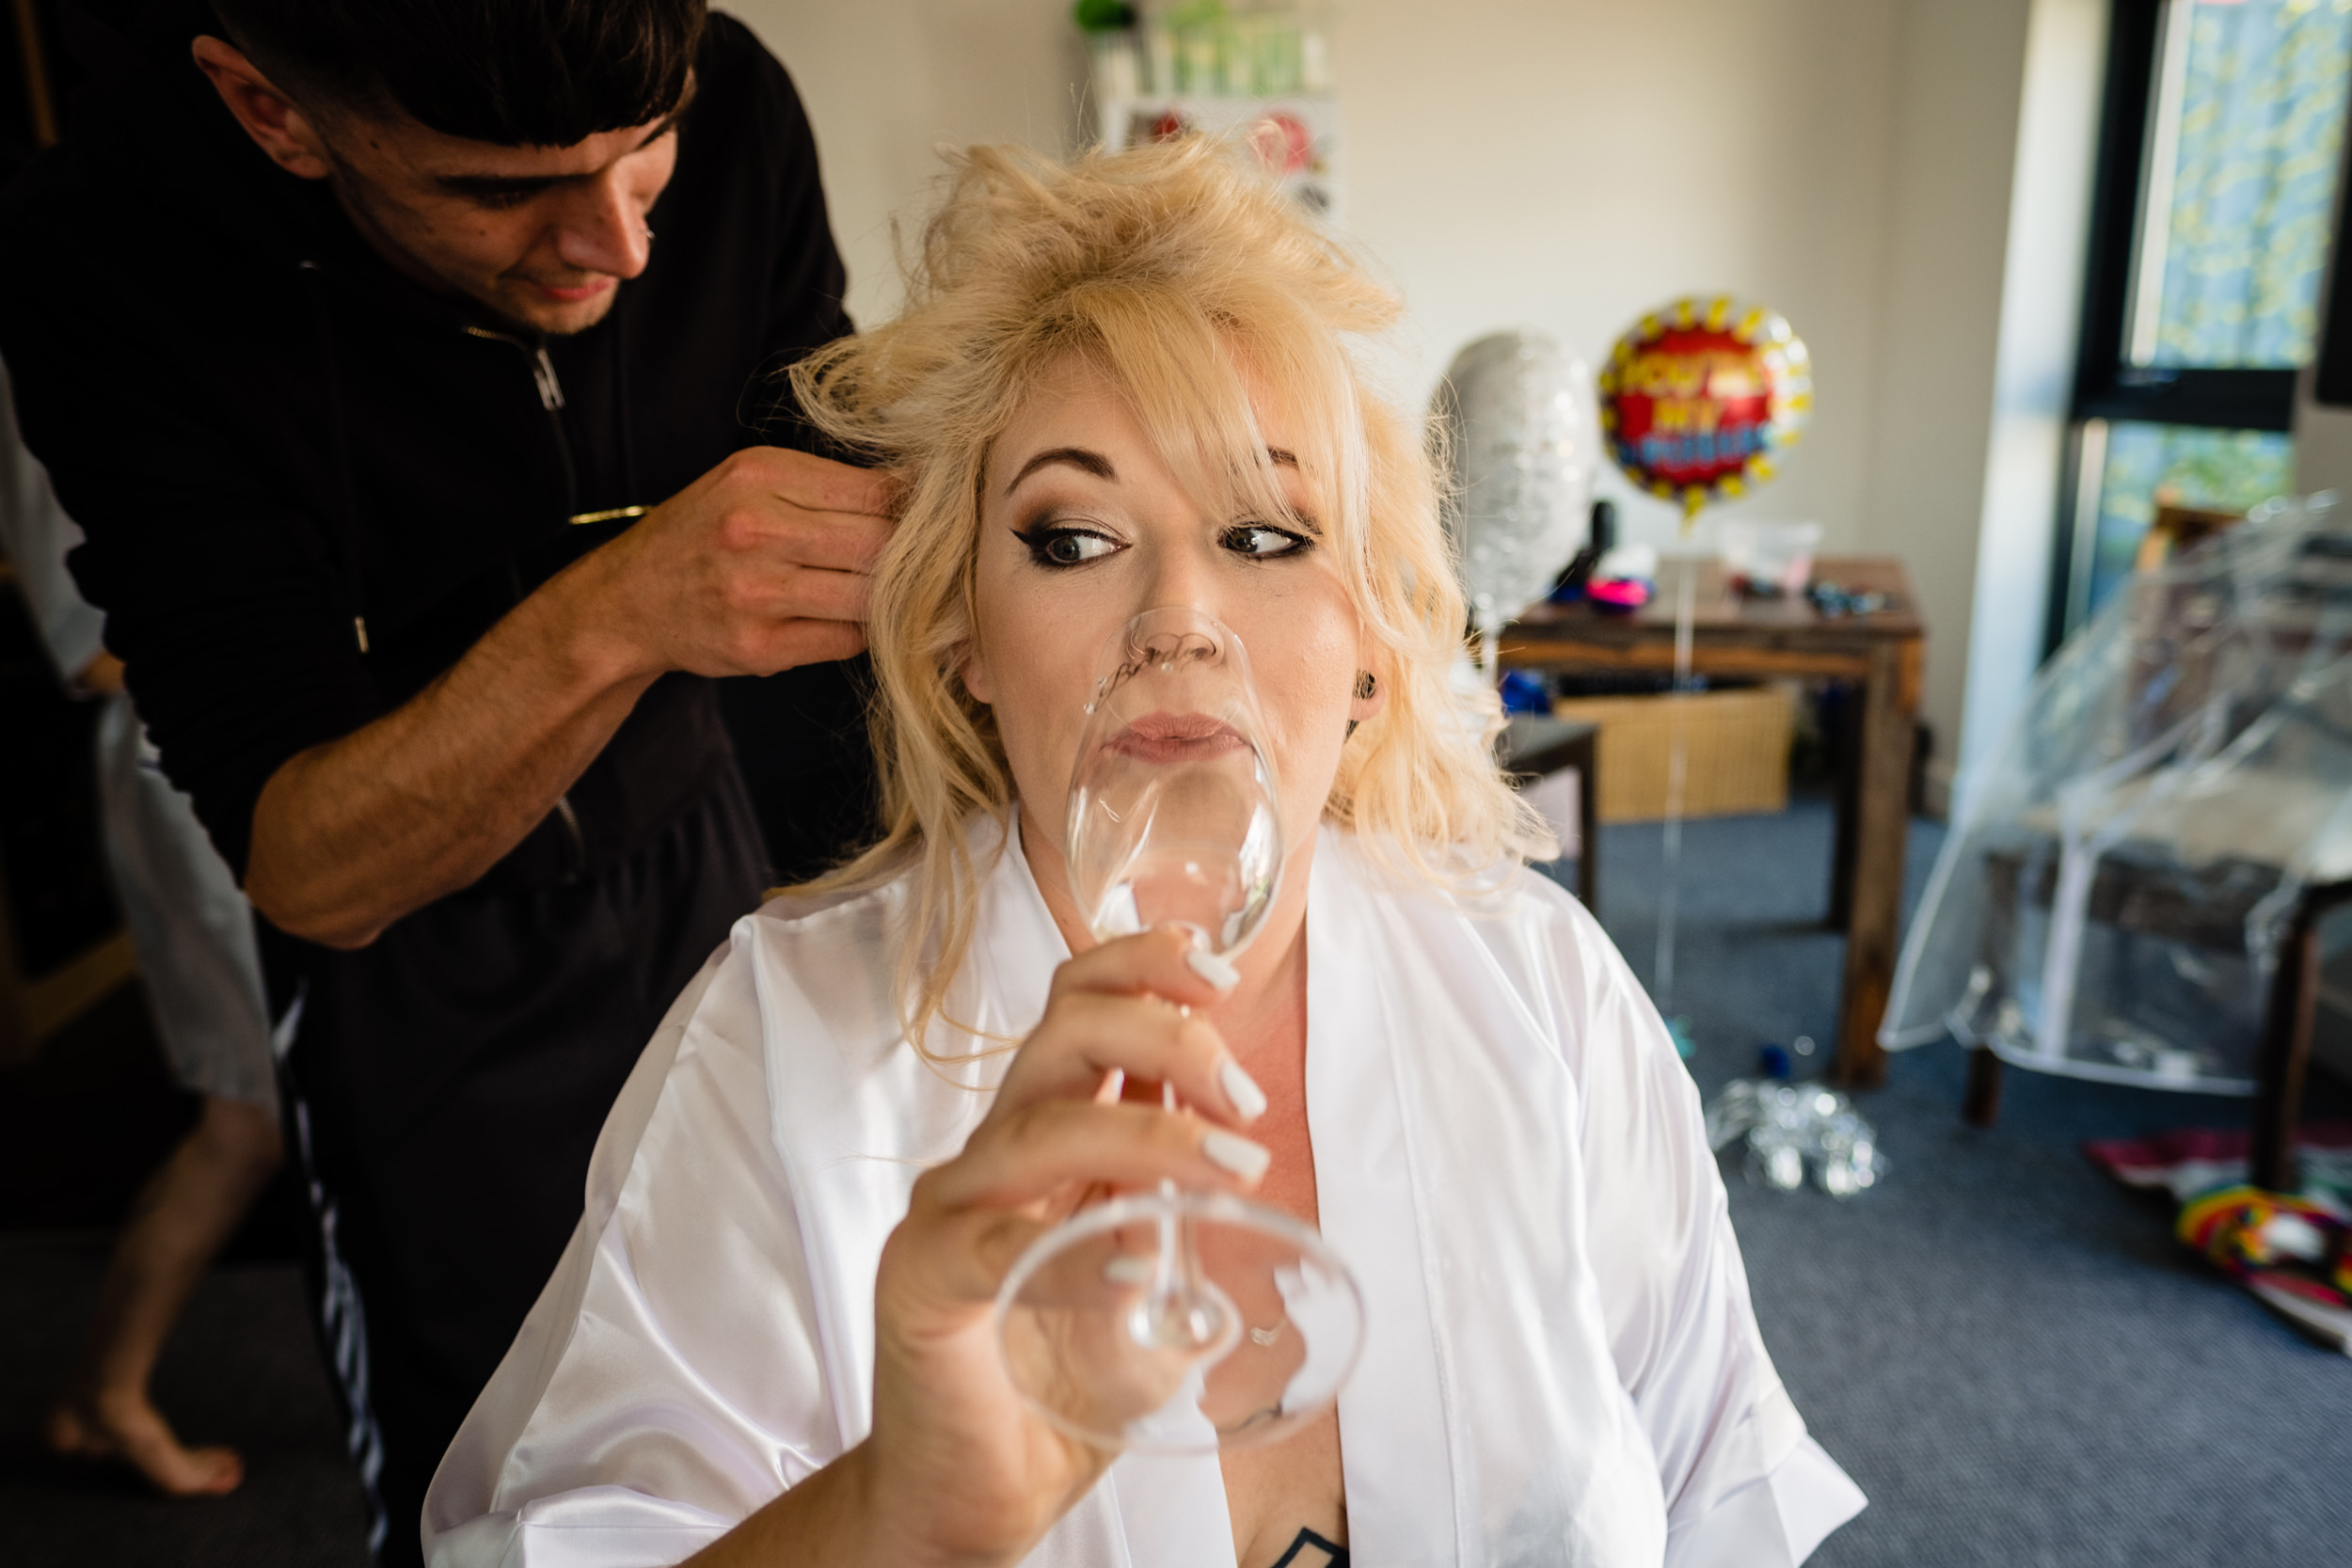 bride sipping champagne as she has her hair done. plough inn, hathersage wedding photography by emma and rich.